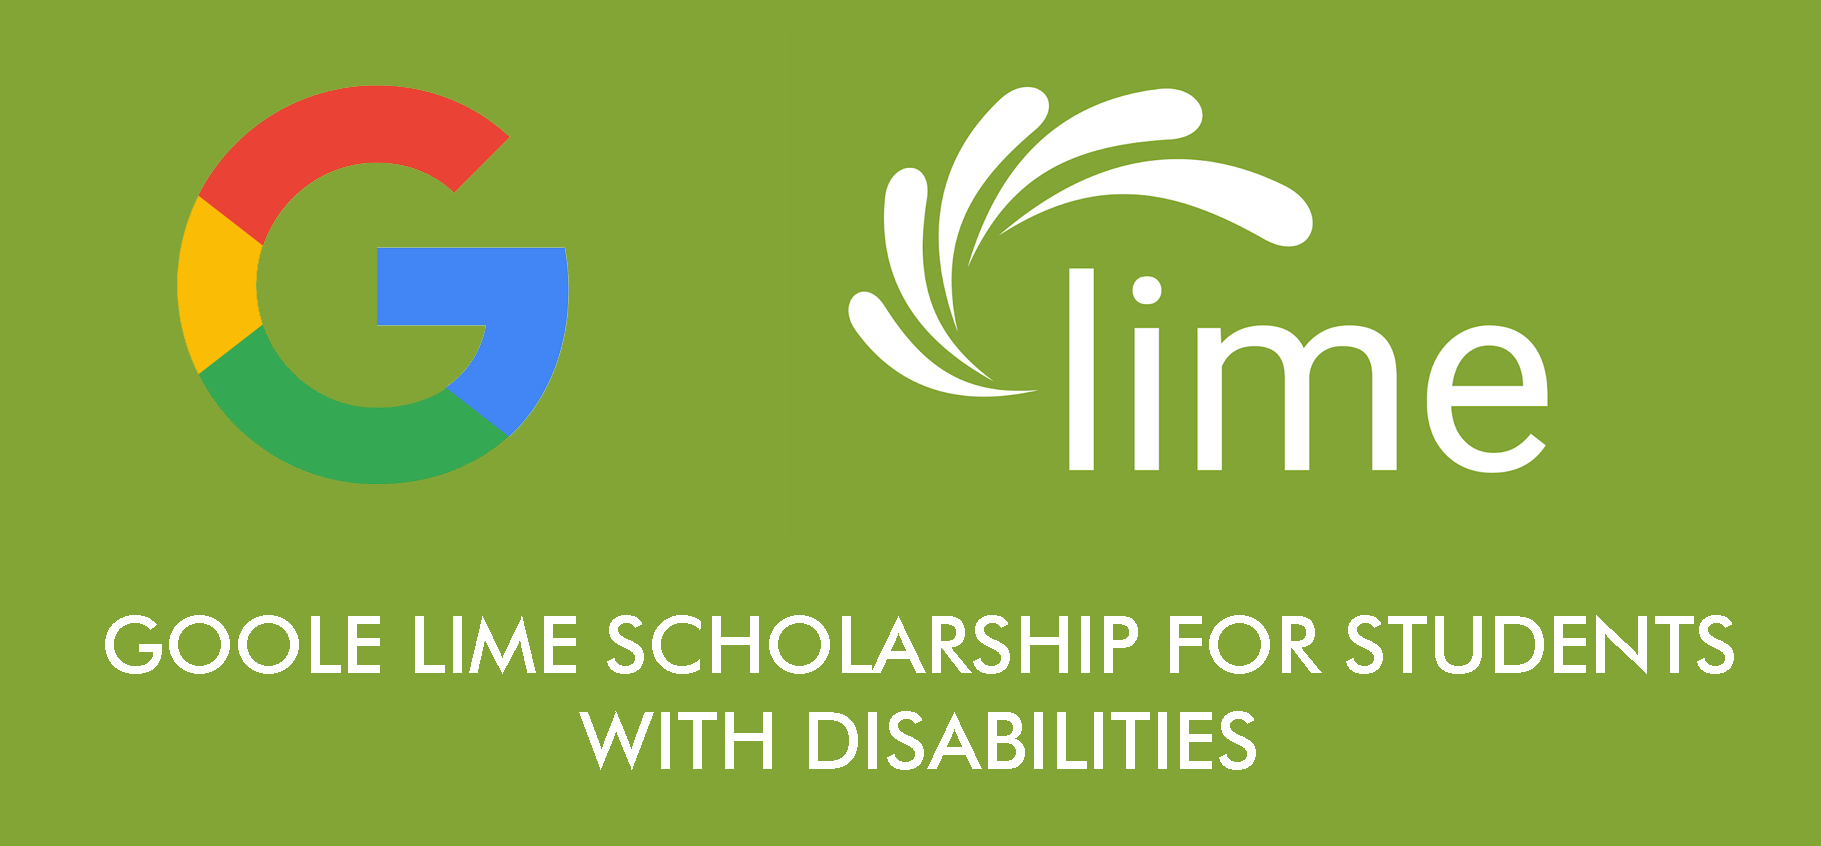 Google Lime Scholarship for Students with Disabilities